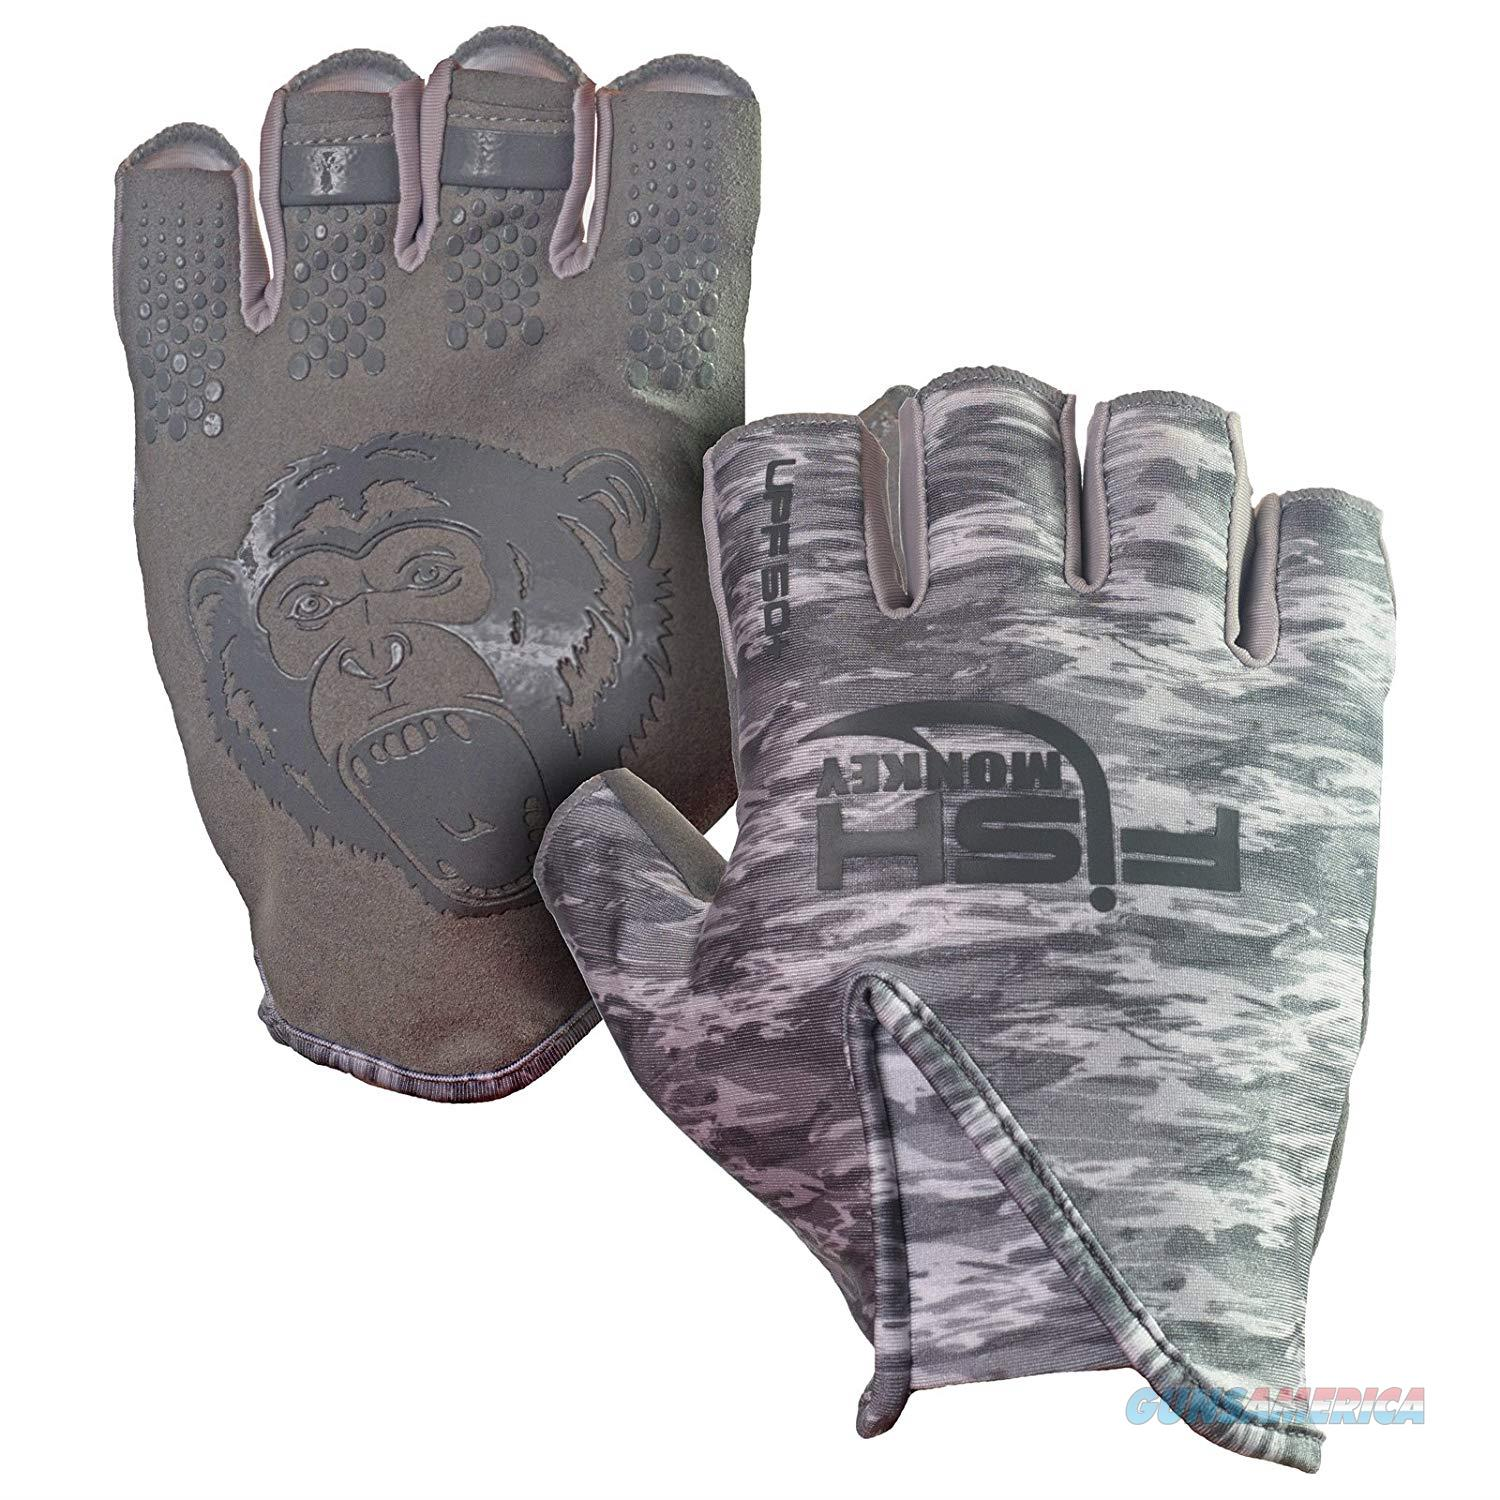 Fish Monkey Stubby Guide Glove Grey XL  Non-Guns > Hunting Clothing and Equipment > Clothing > Gloves